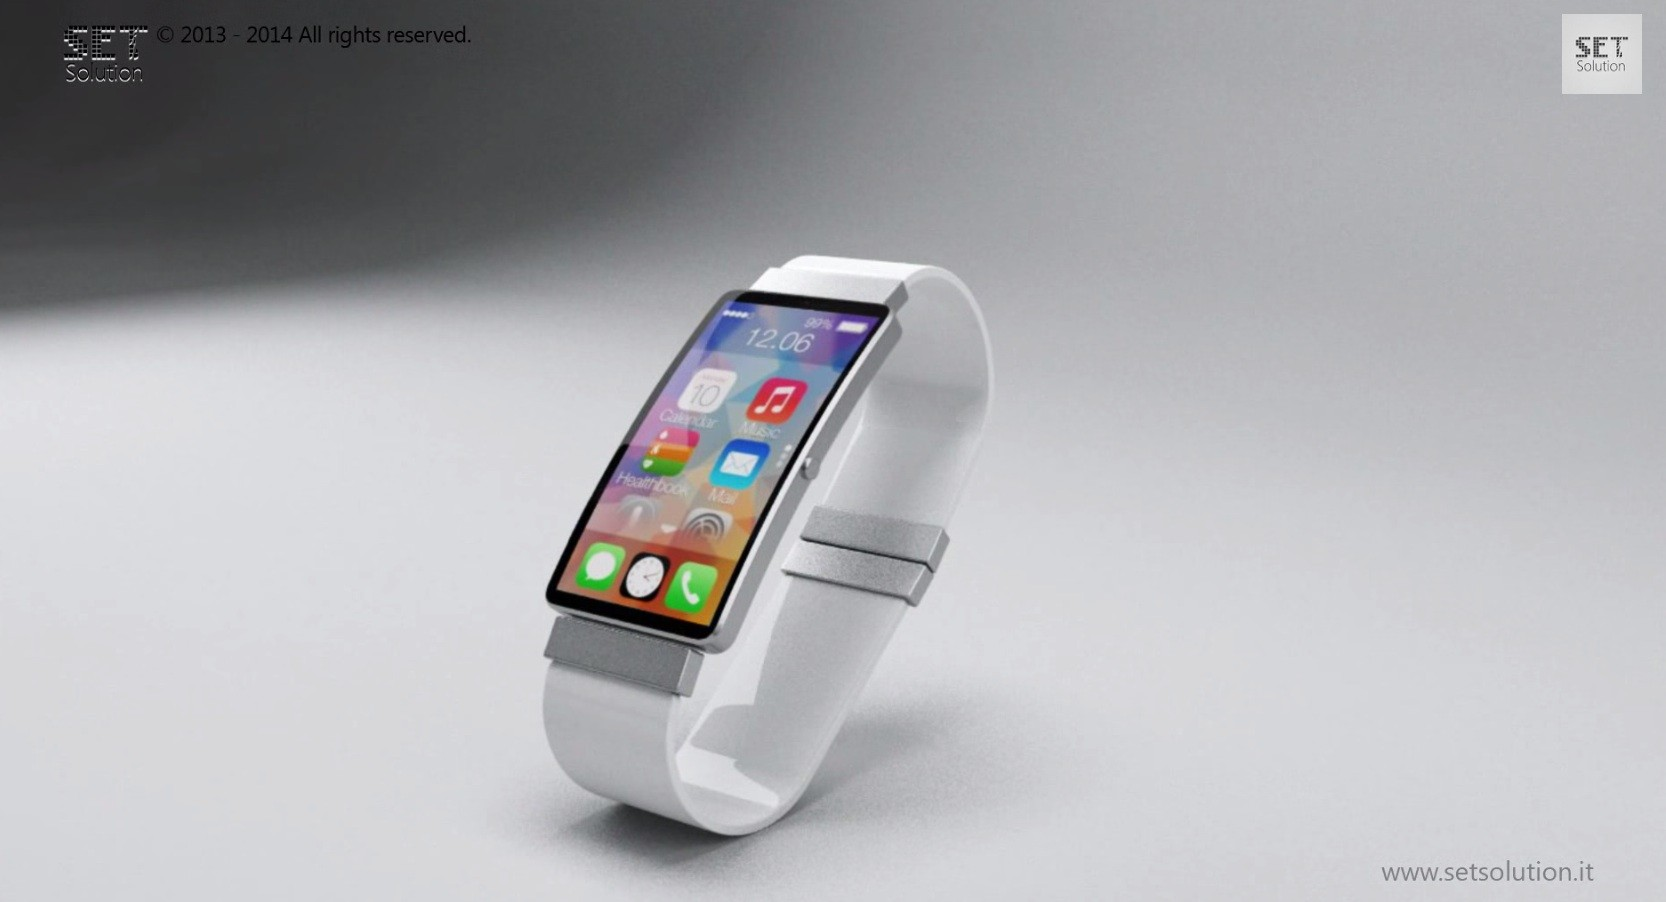 Four Amazing iWatch Concepts to Tickle Your Imagination ...